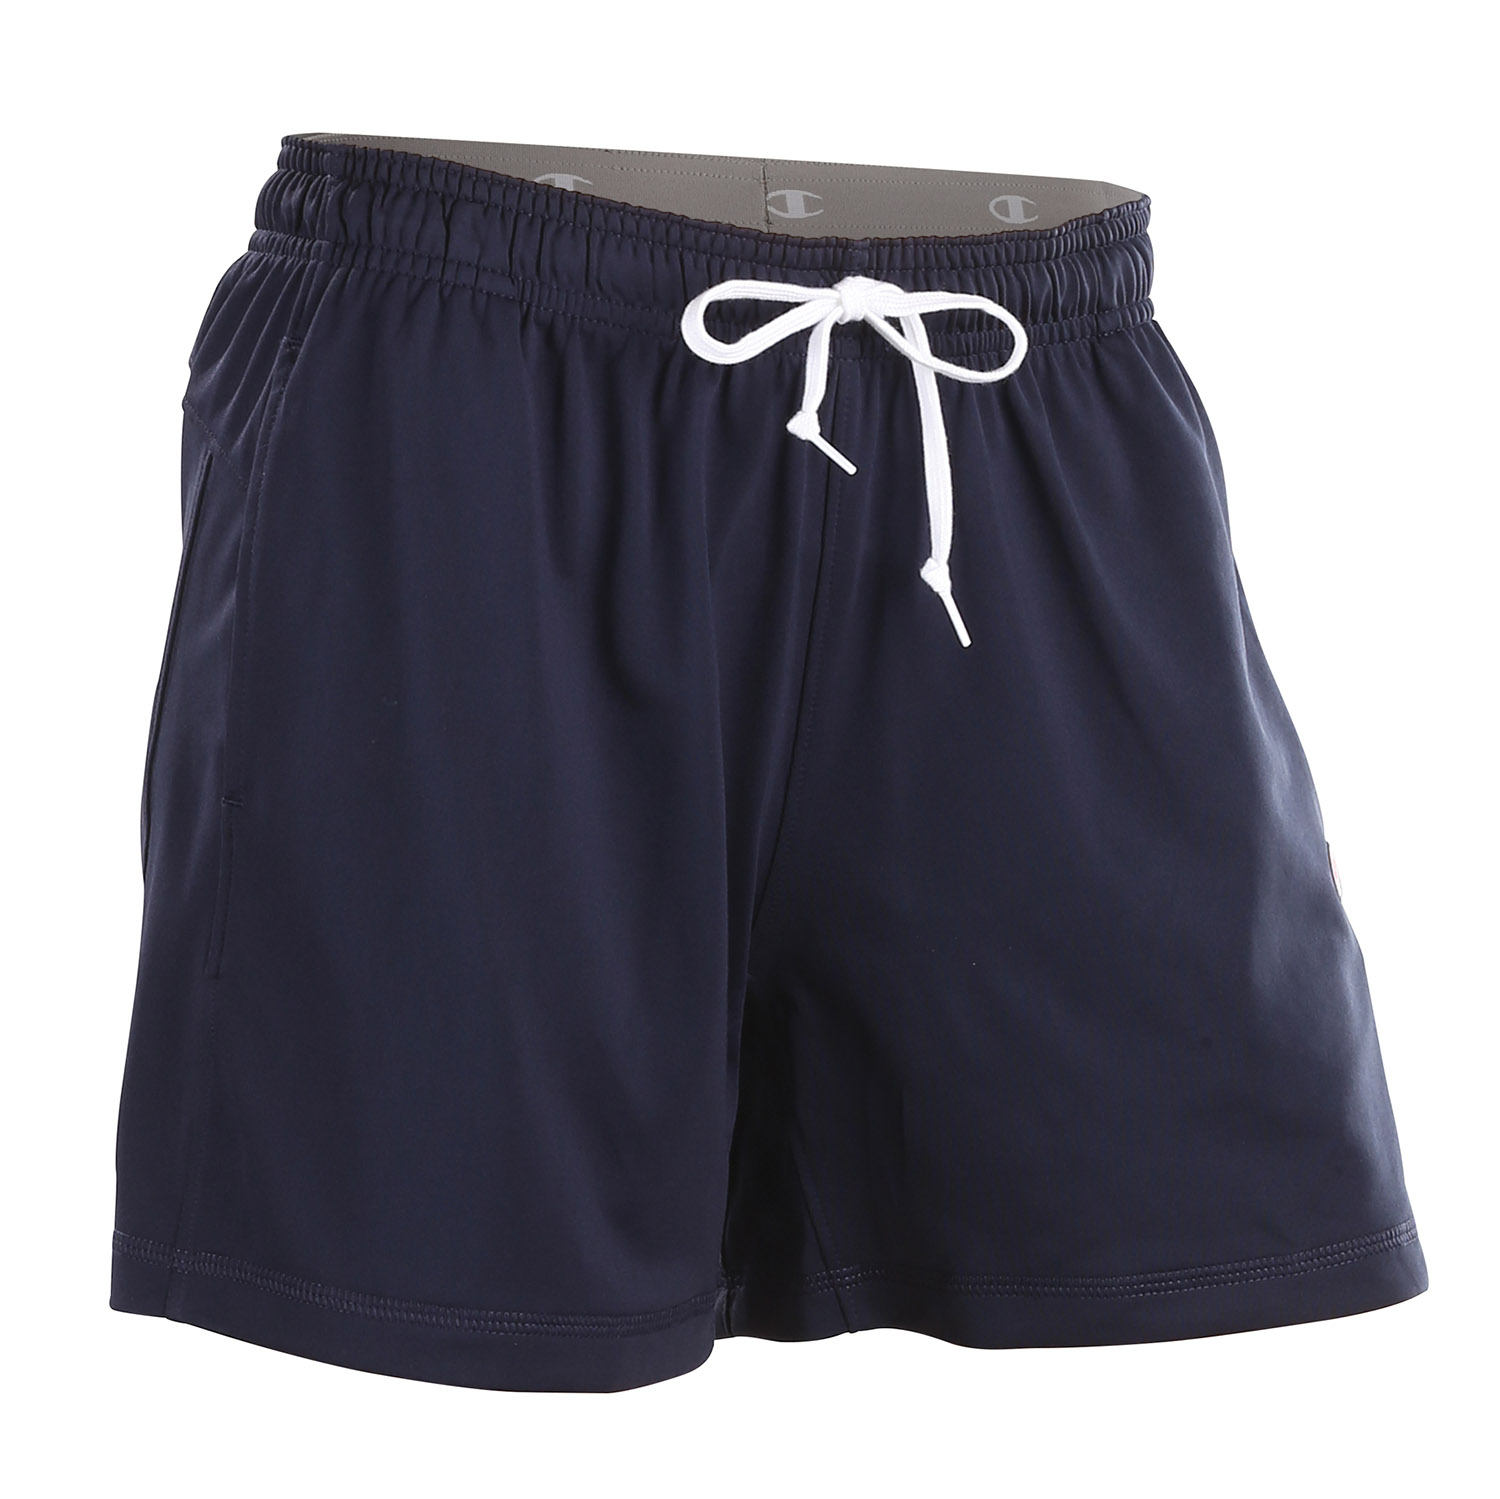 "Champion Women's Double Dry 5"" Shorts with Pockets"